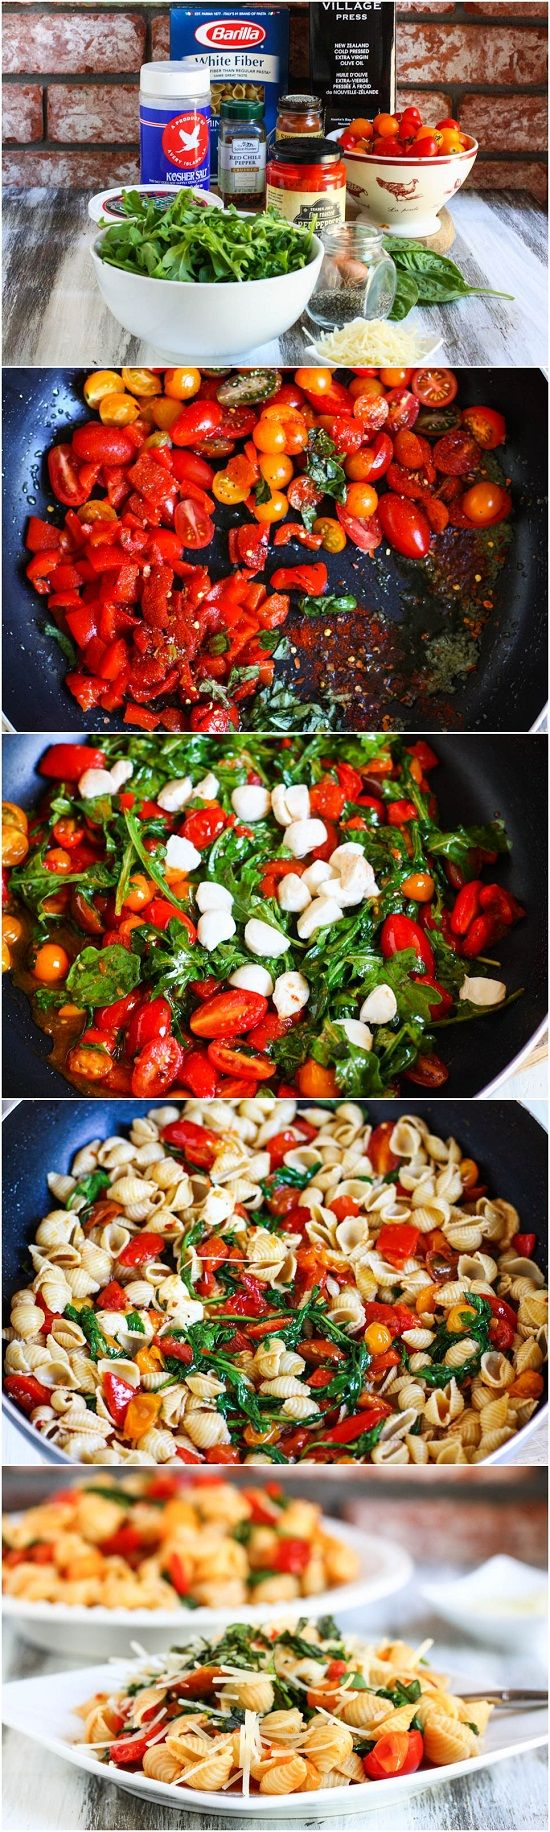 Tomato, Roasted Pepper and Arugula Pasta: